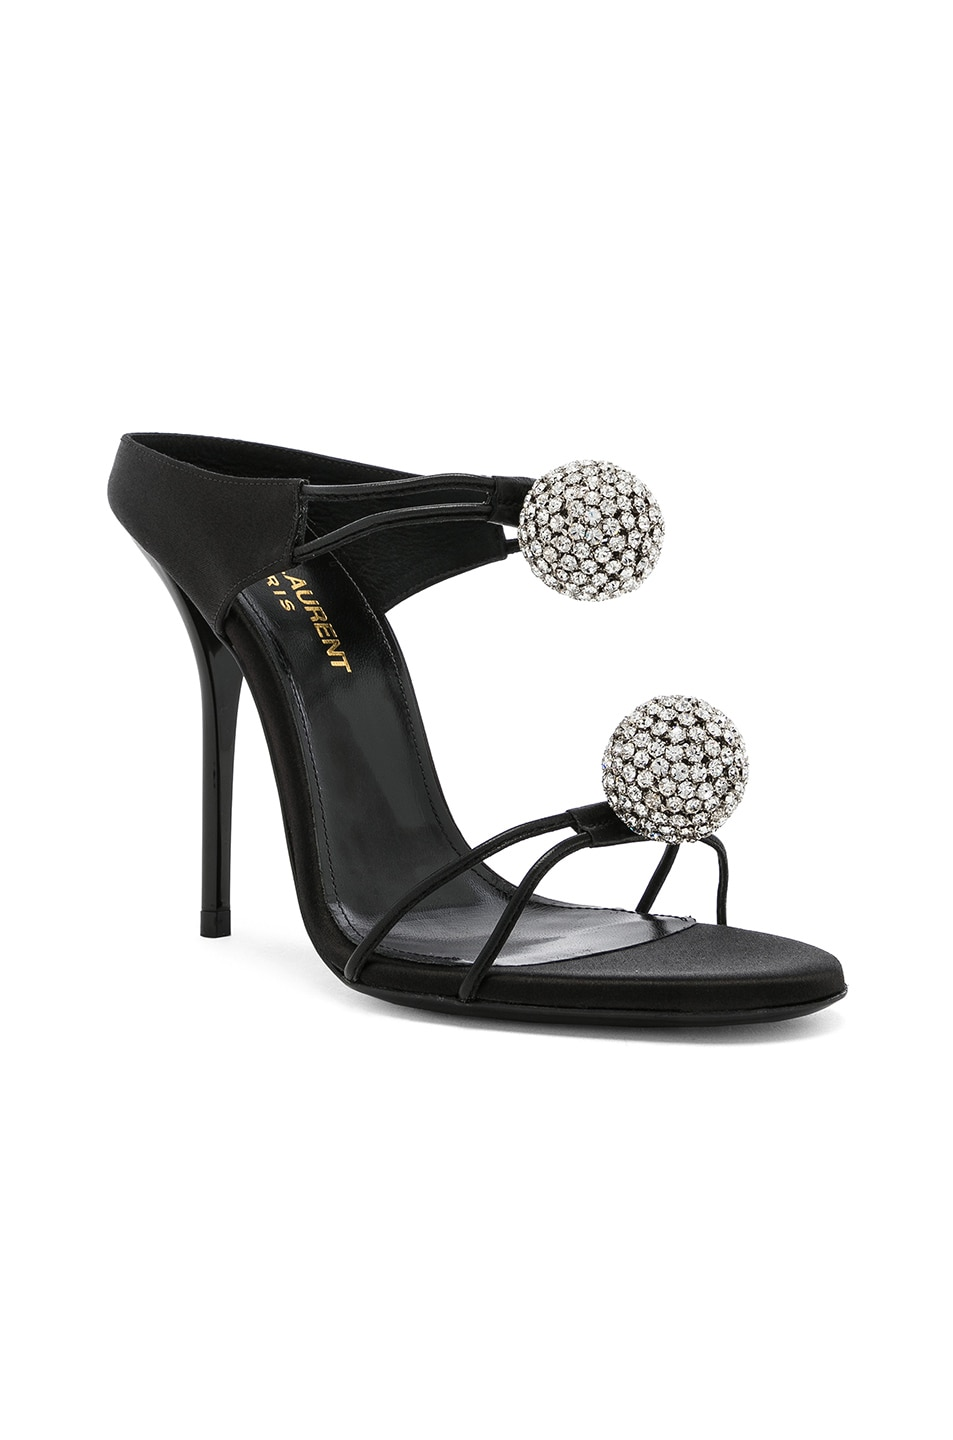 Image 2 of Saint Laurent Satin Pom Pom Strap Pierre Sandals in Black